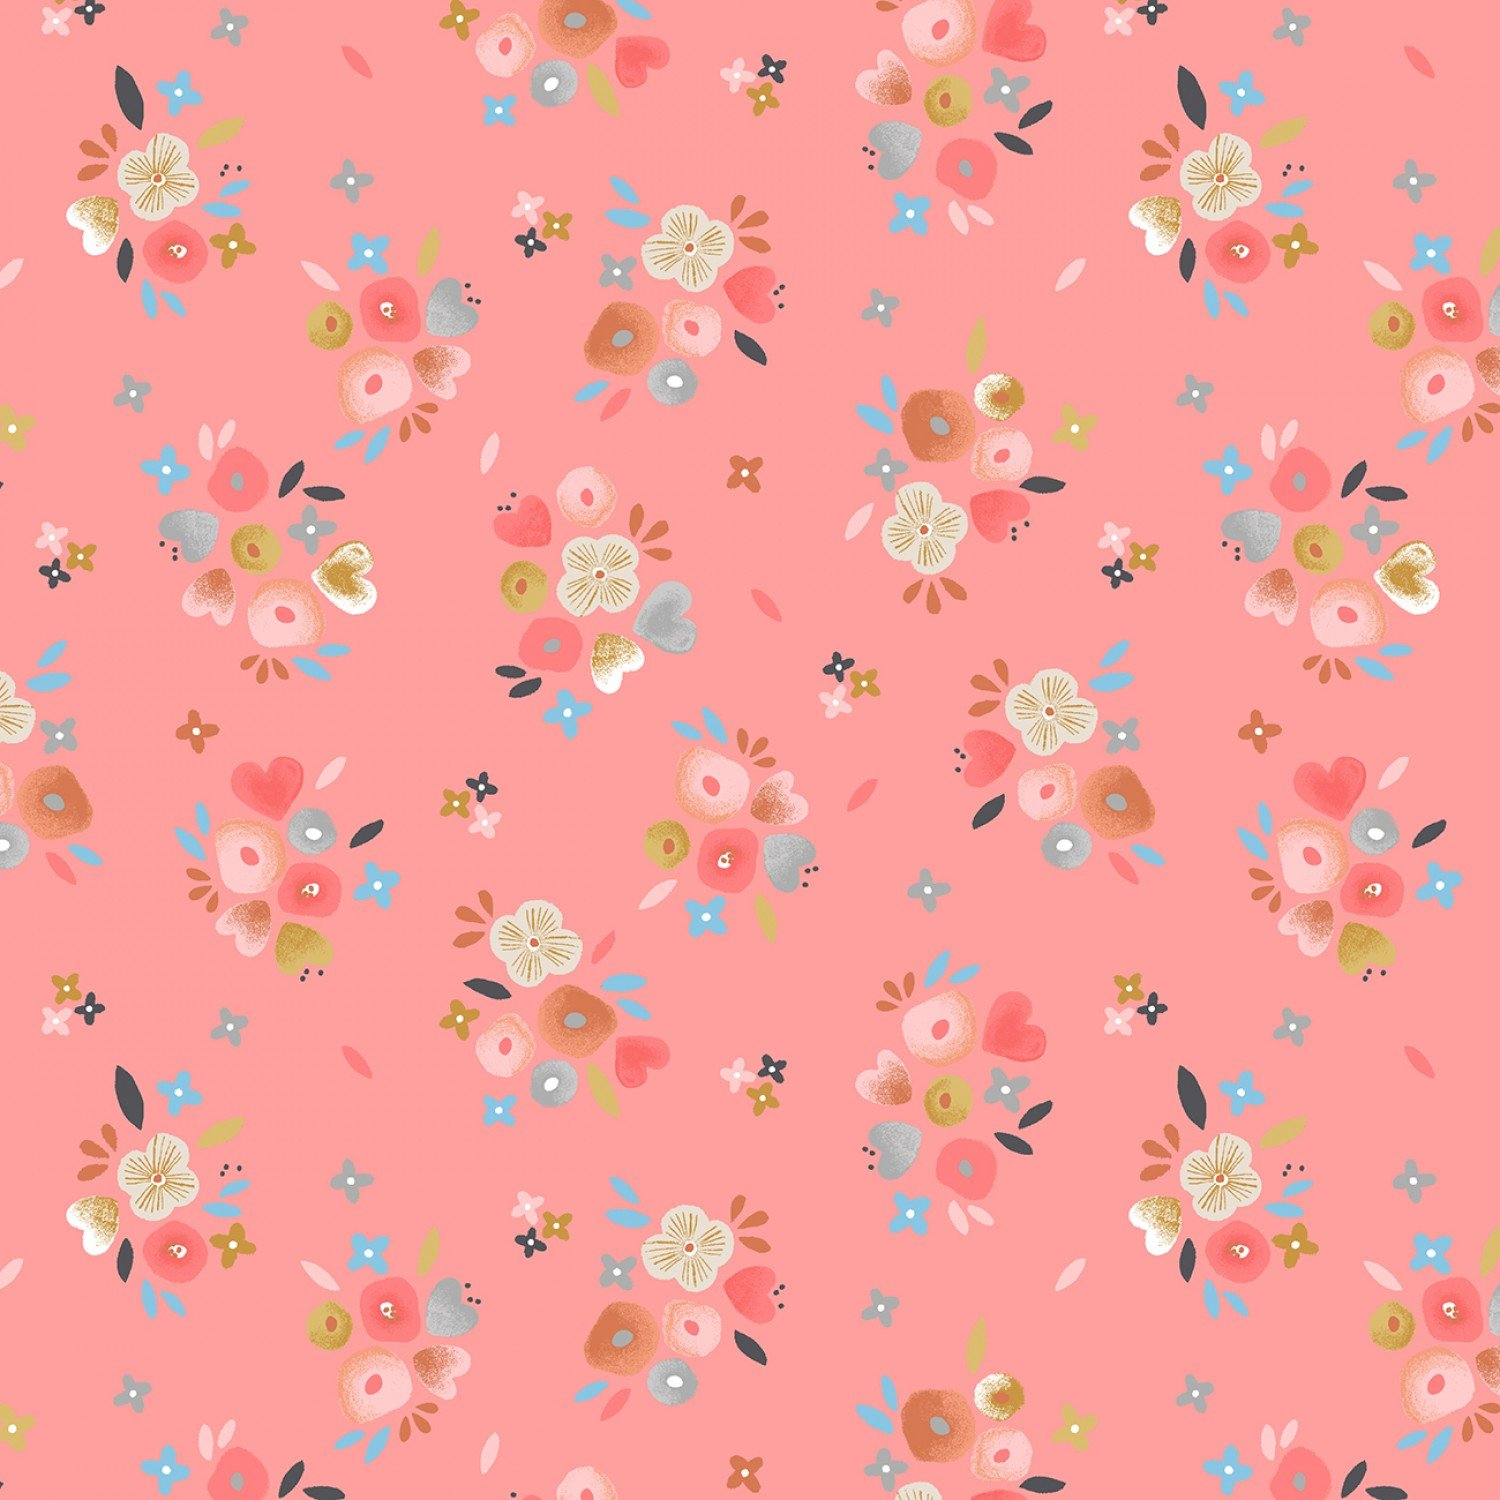 Exploring With Mom Rose Baby Bouquets Children's Fabric Yardage 42-43 Inches